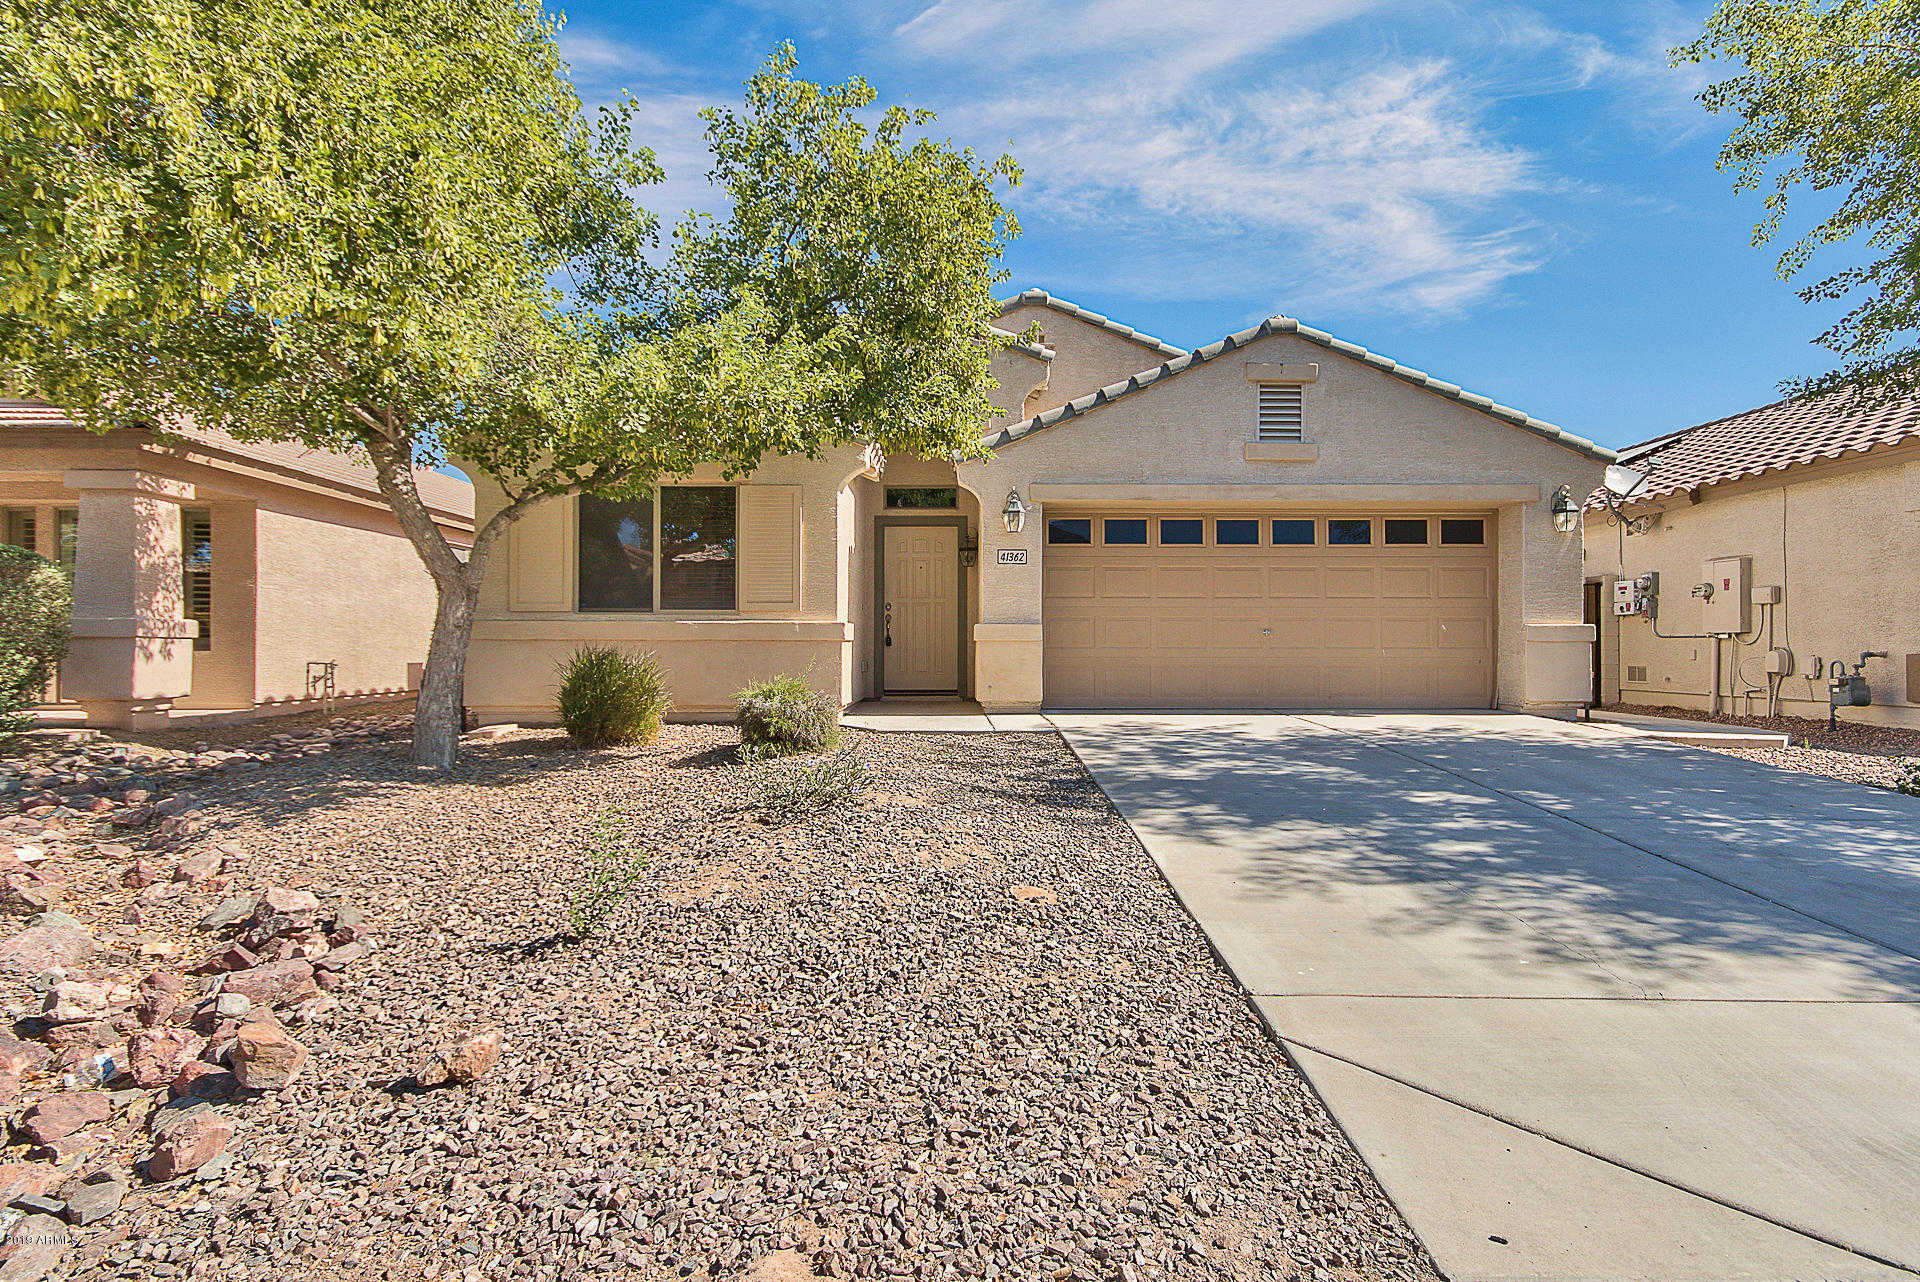 $200,000 - 3Br/2Ba - Home for Sale in Parcel 6 At Homestead North, Maricopa